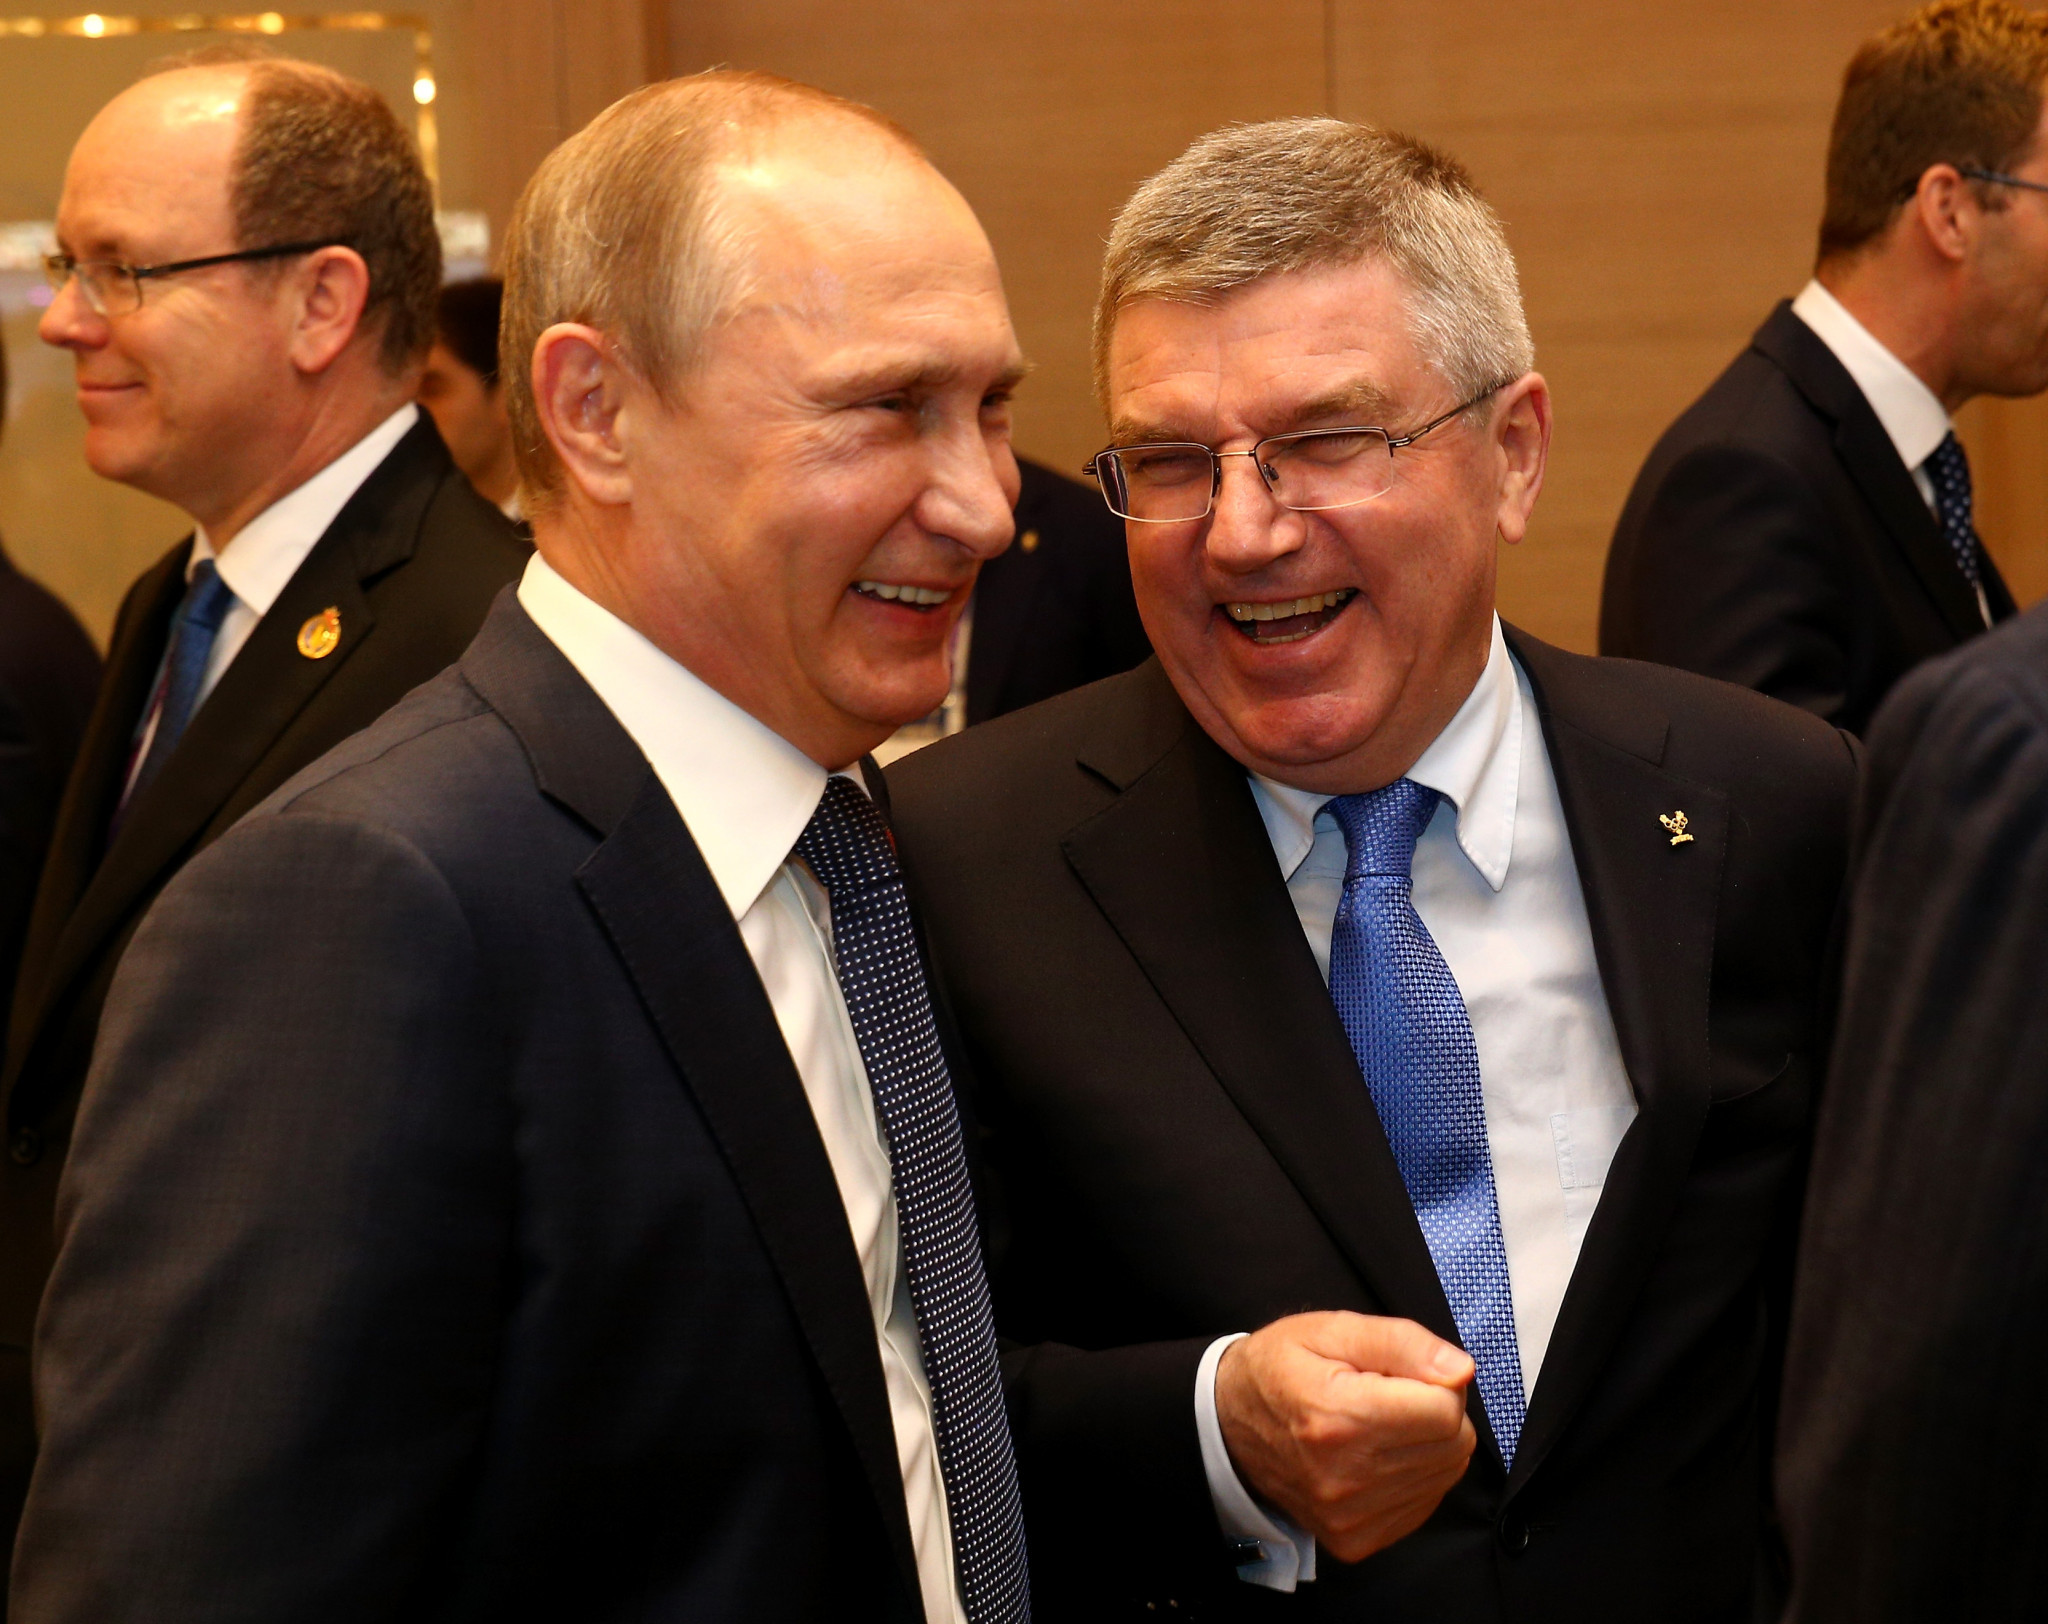 Vladimir Putin, left, pictured with IOC President Thomas Bach ©Getty Images